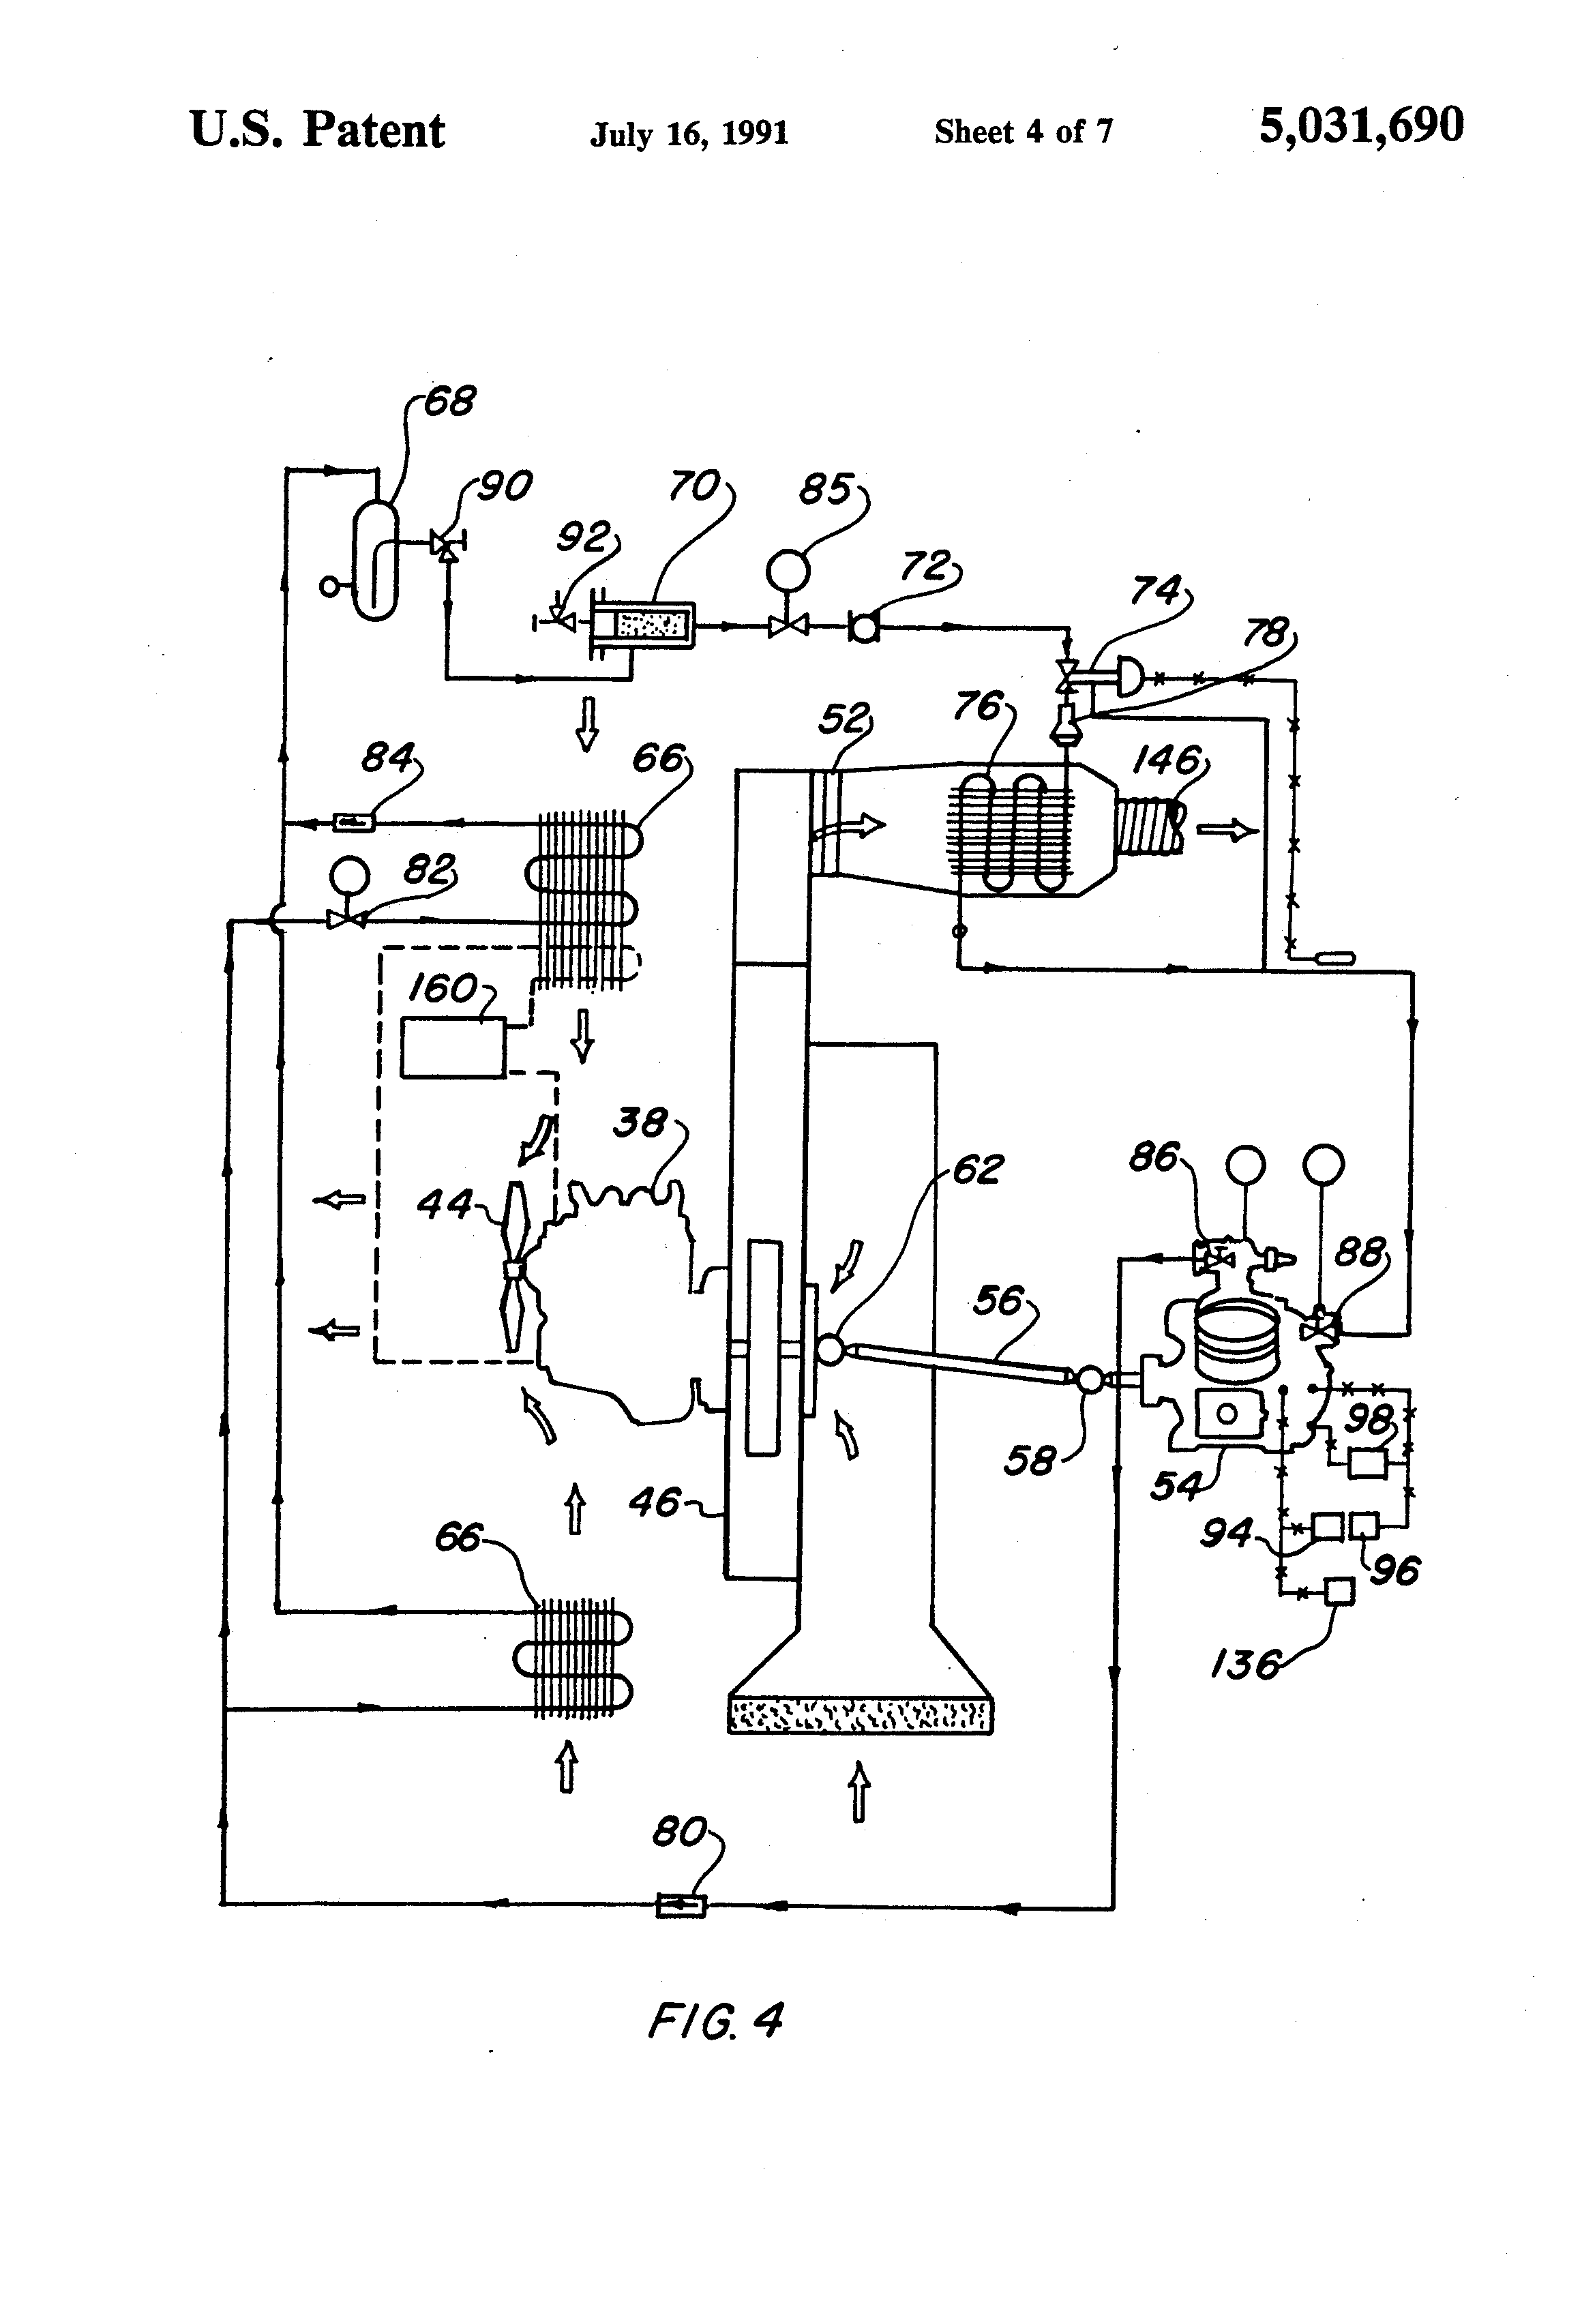 fan limit switch wiring diagram for a space heater